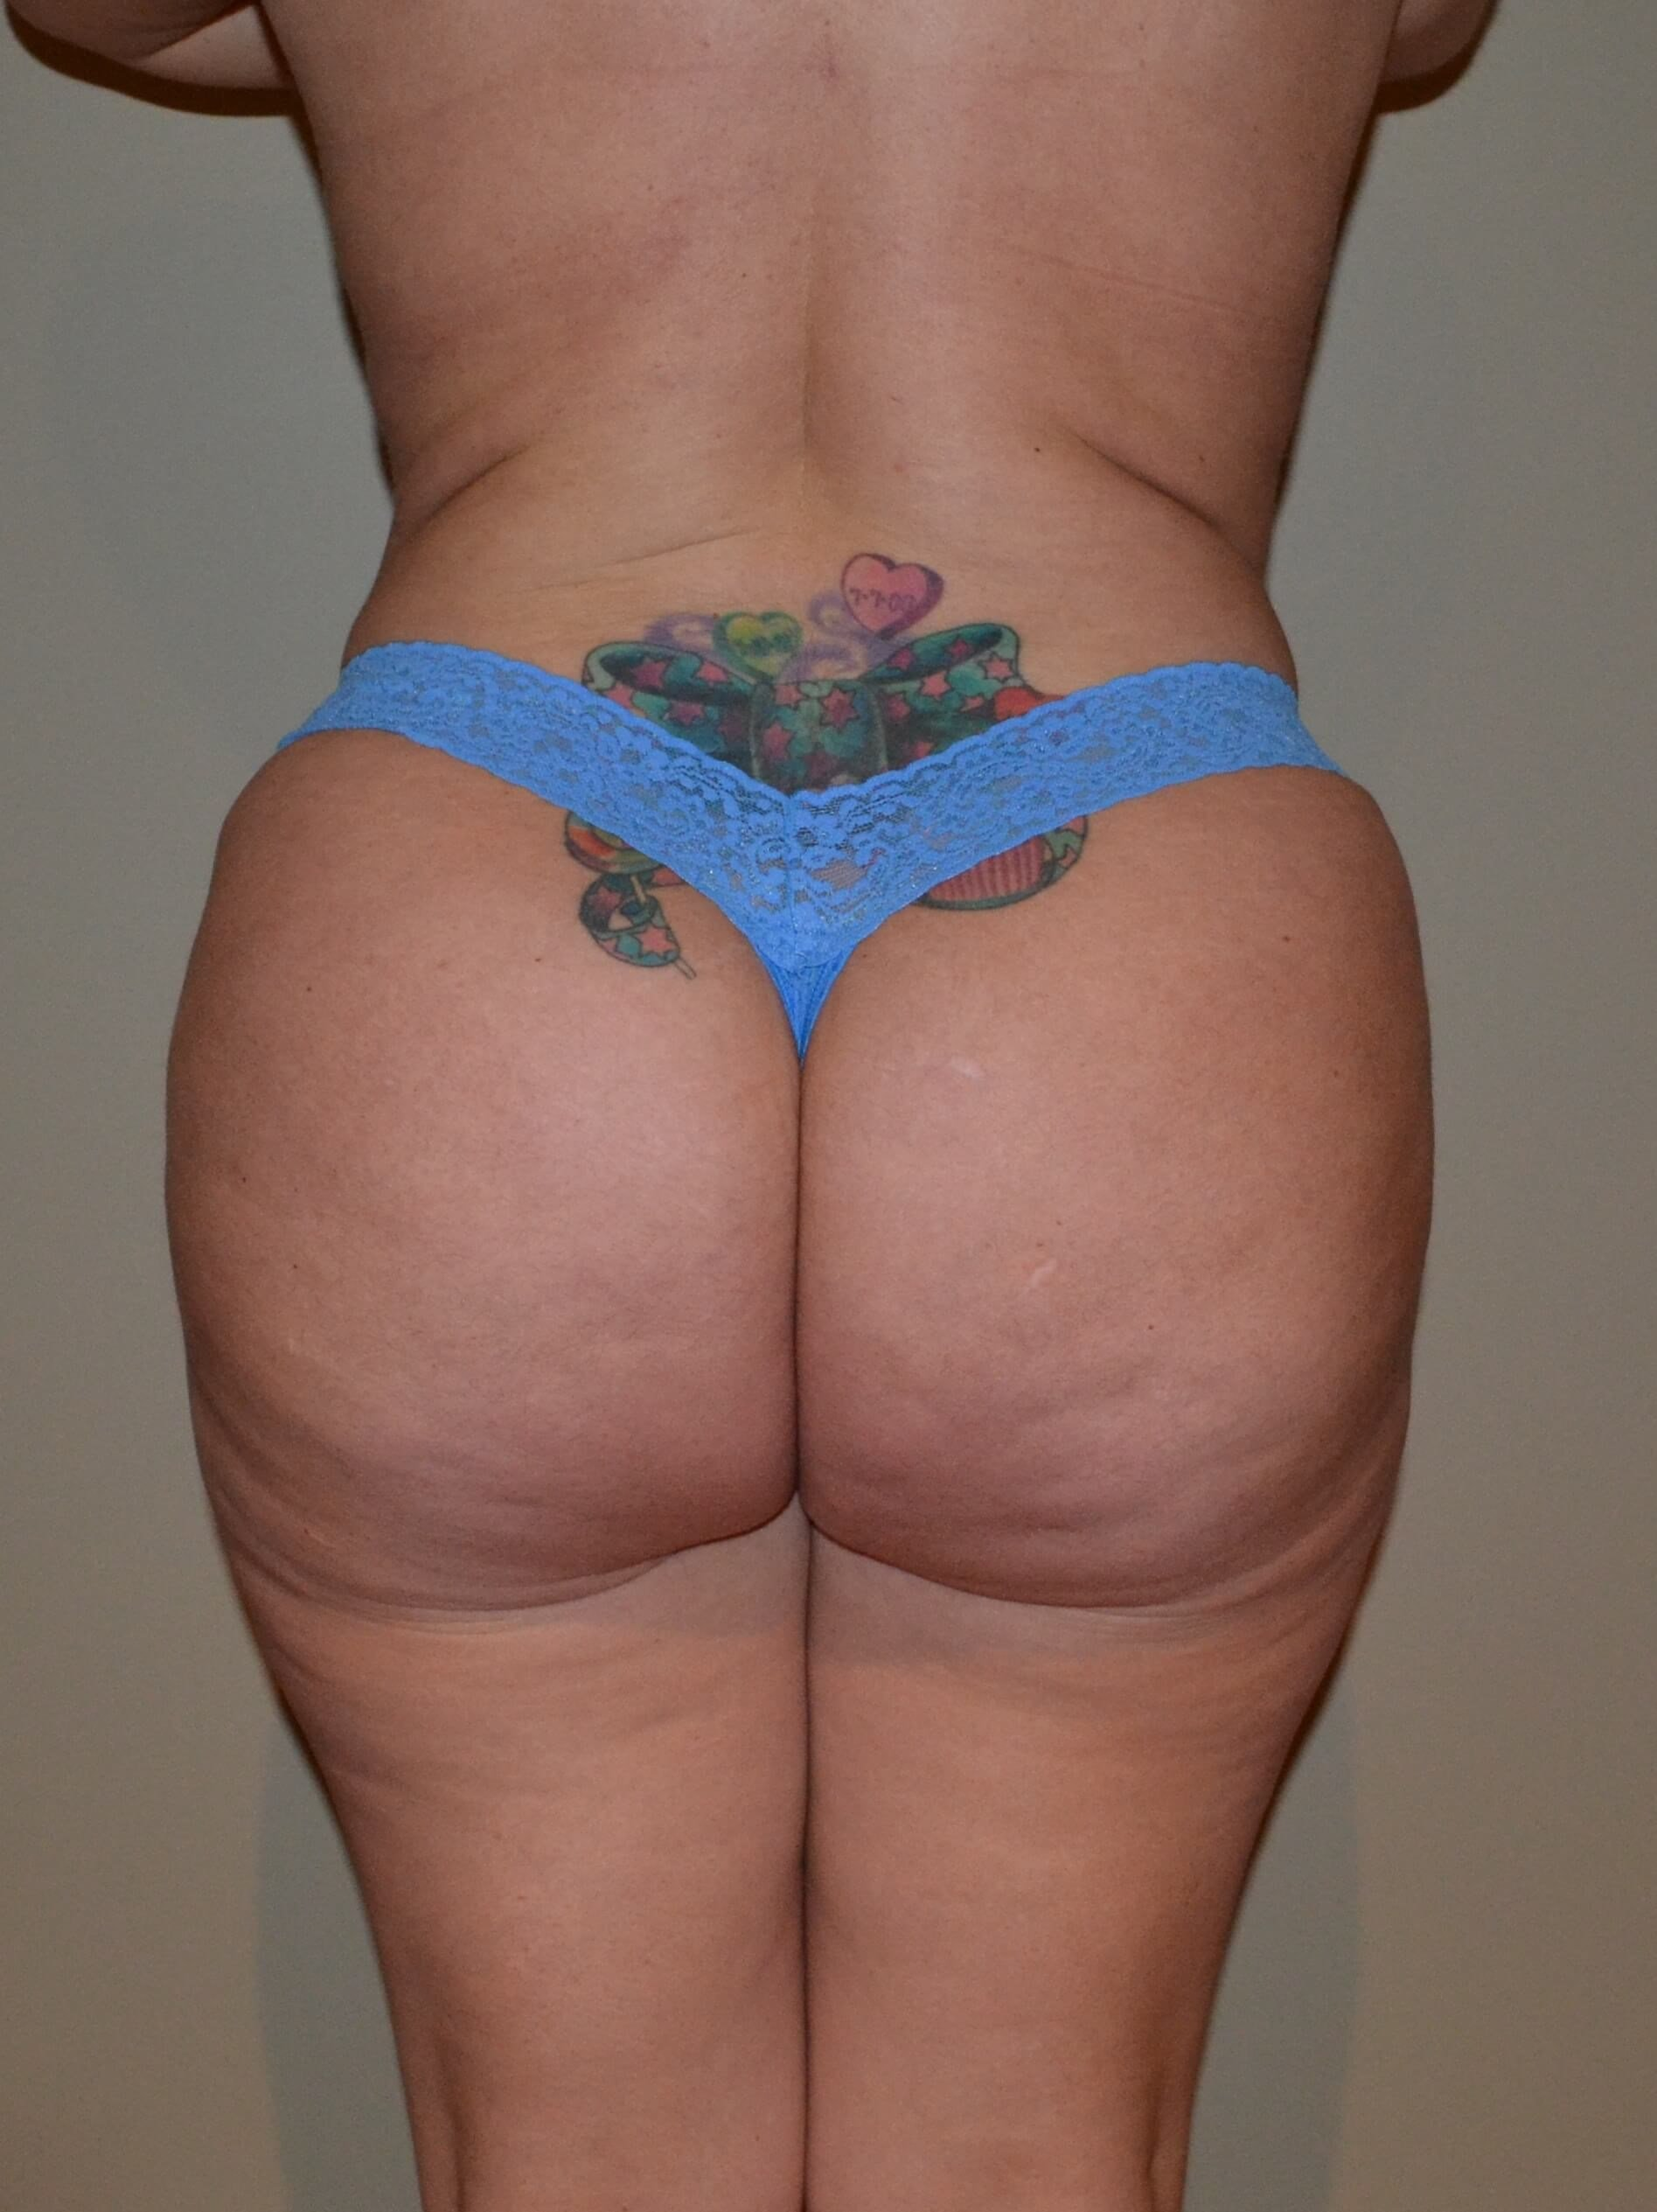 Brazilian Butt Lift After, 8 months post